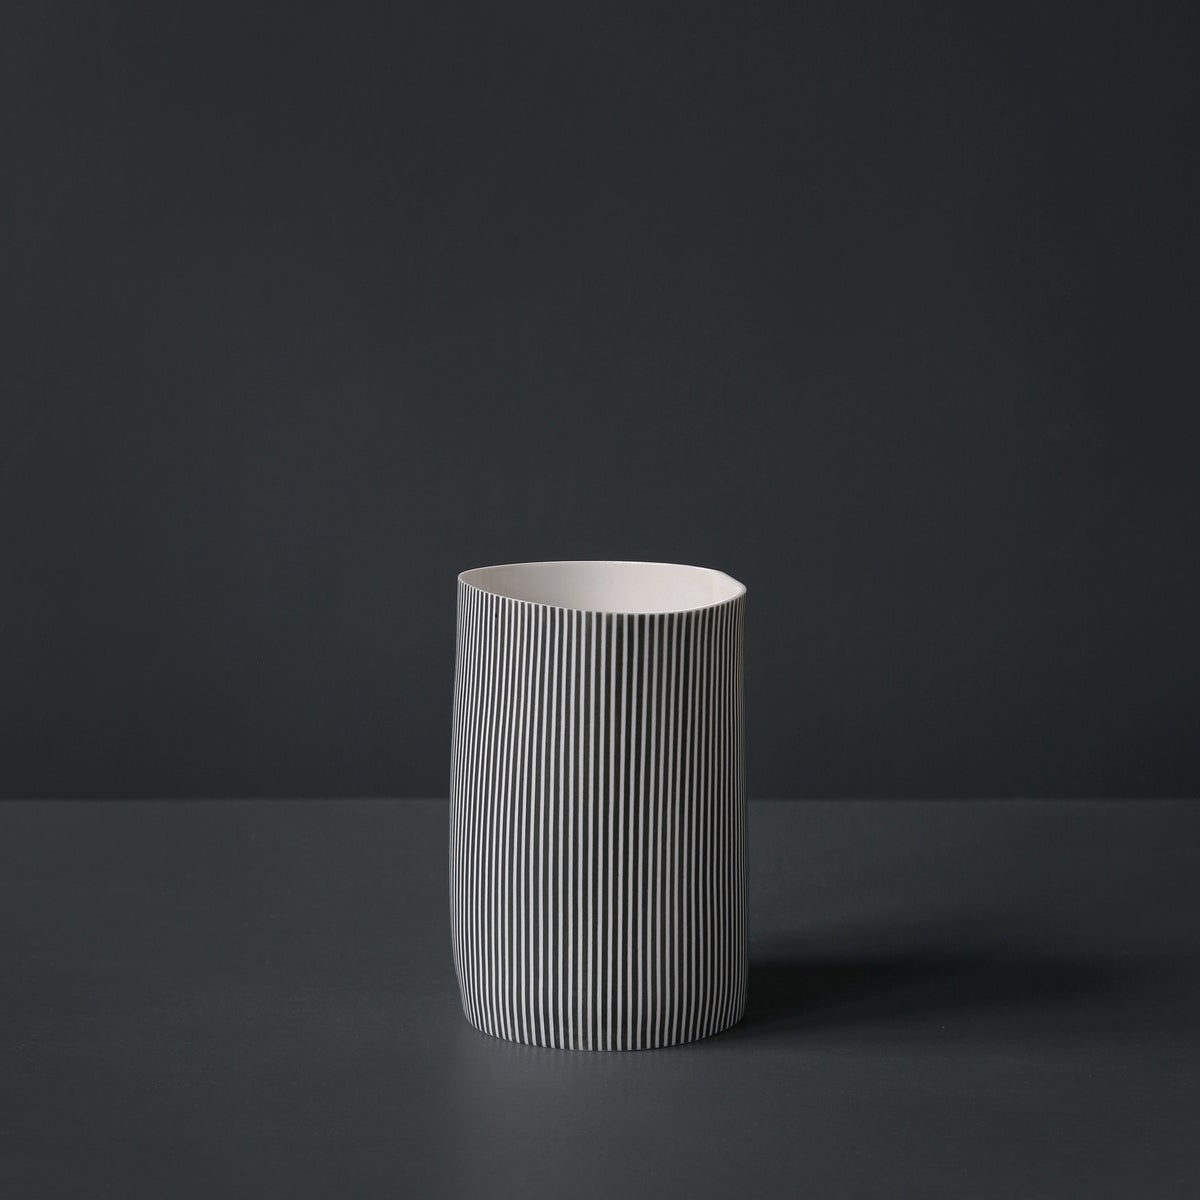 Image of Straight Stripe Vessel #1 by Justine Allison.